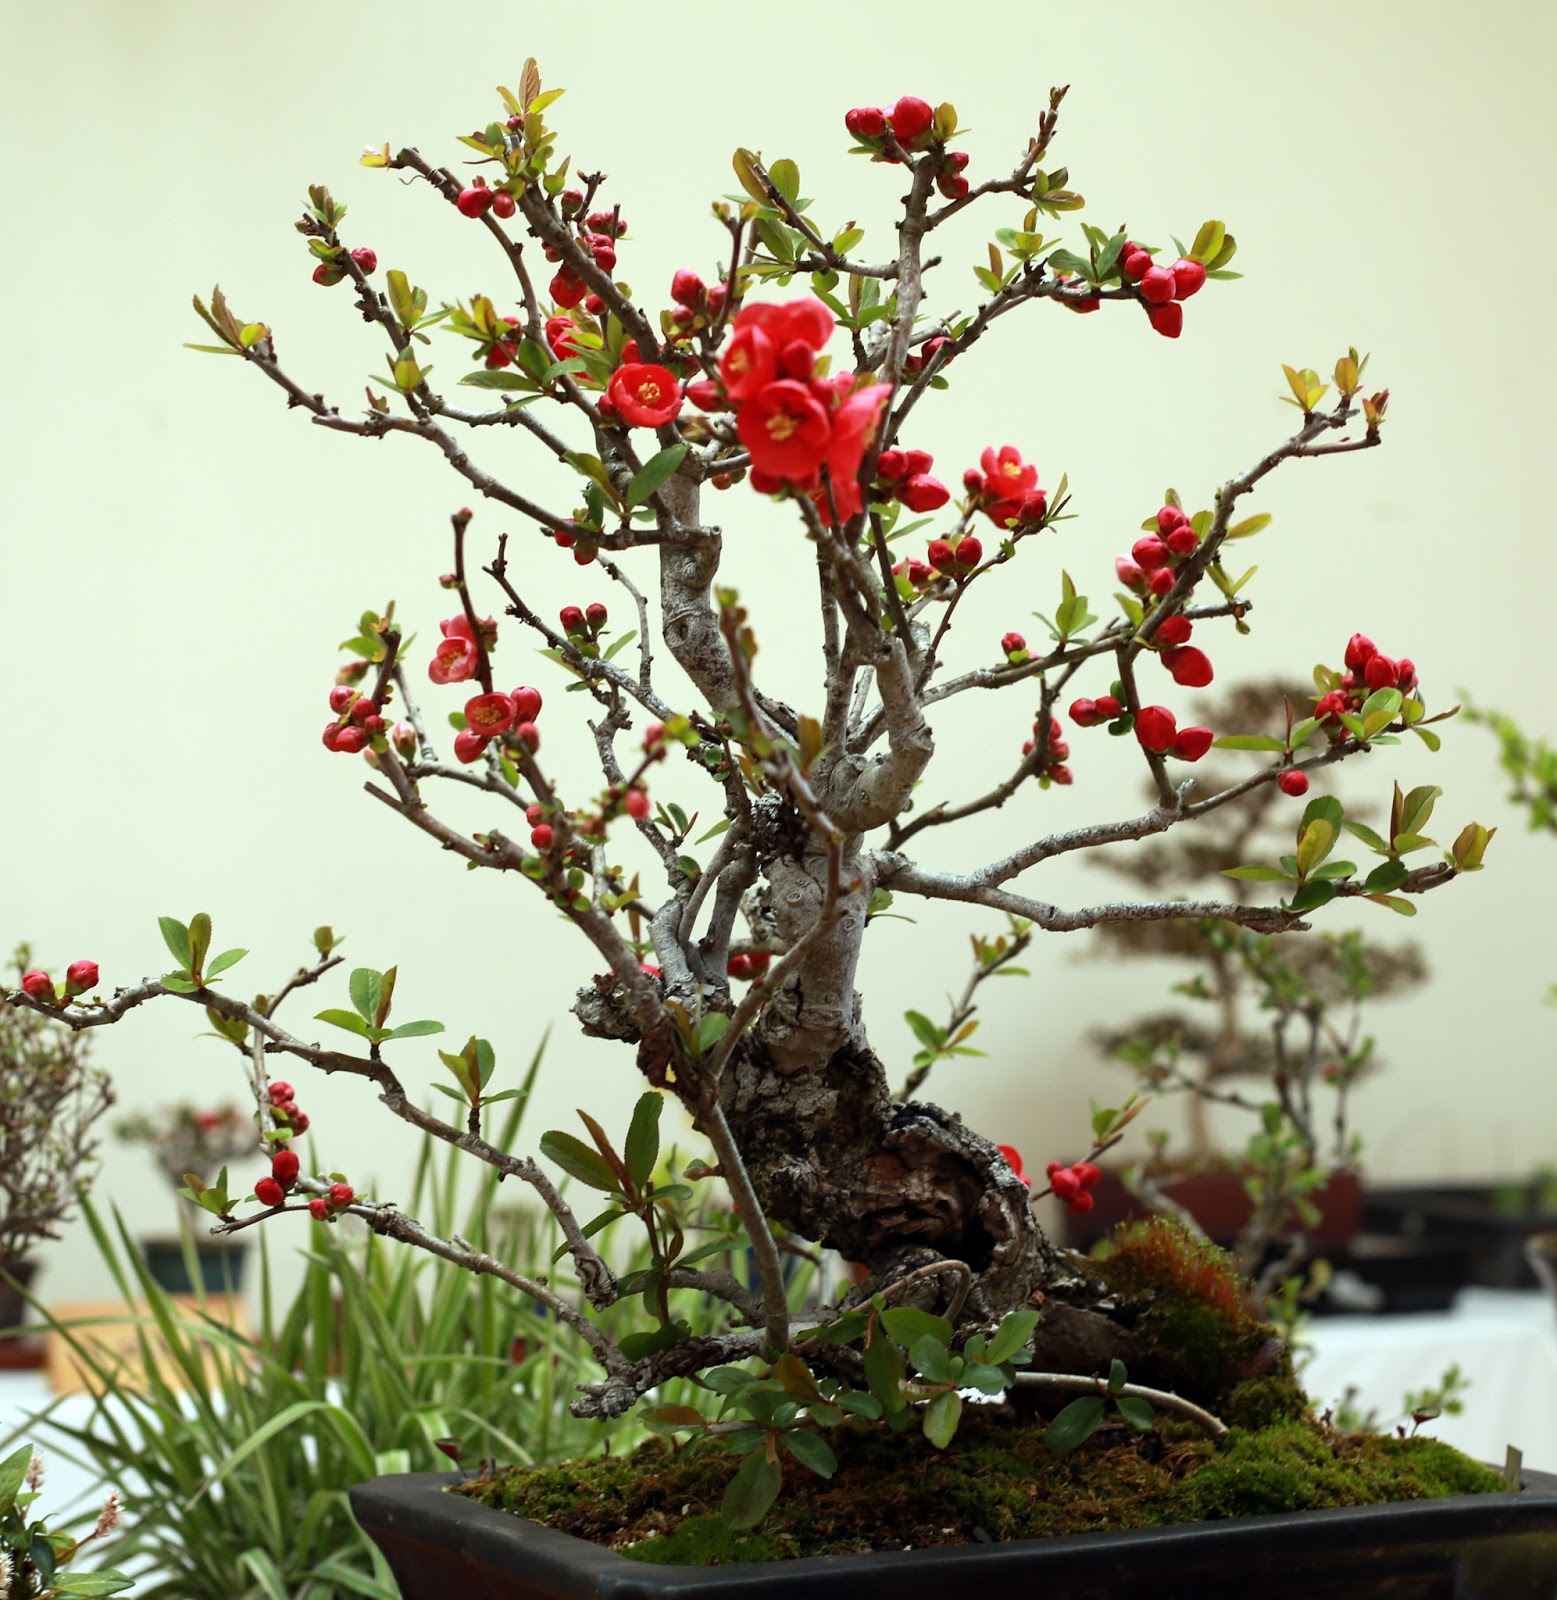 Wild Bird And Flower Around Tokyo Abiko Citizen39s Bonsai Exhibition